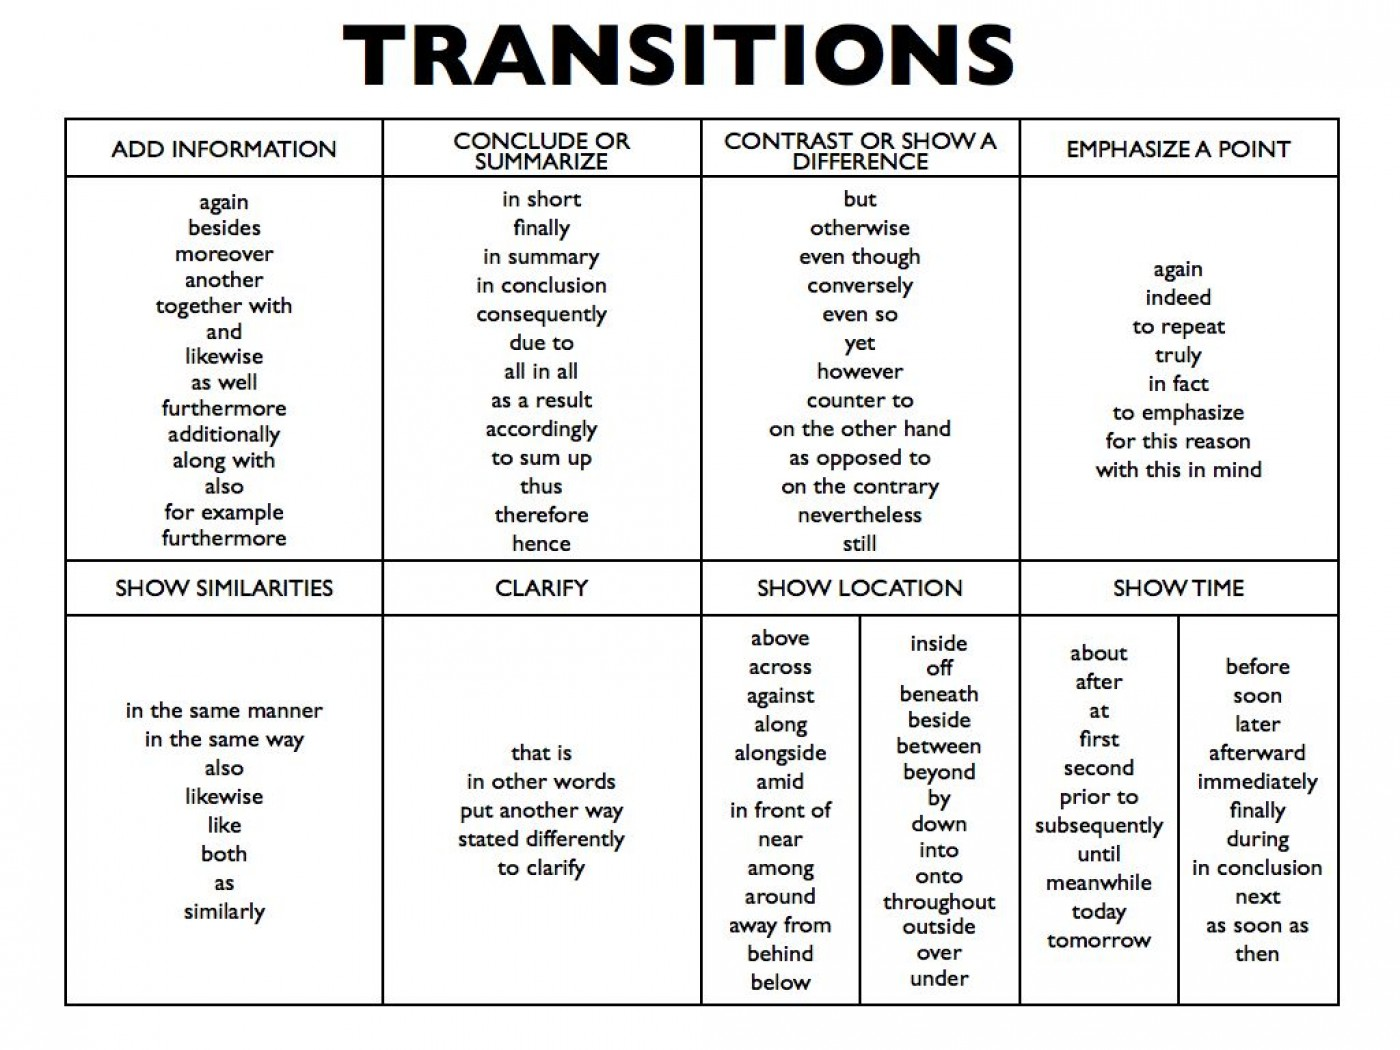 005 Essay Example Transitions 4995883 1 Orig Archaicawful Transition Words For Second Paragraph Writing Pdf And Phrases List 1400